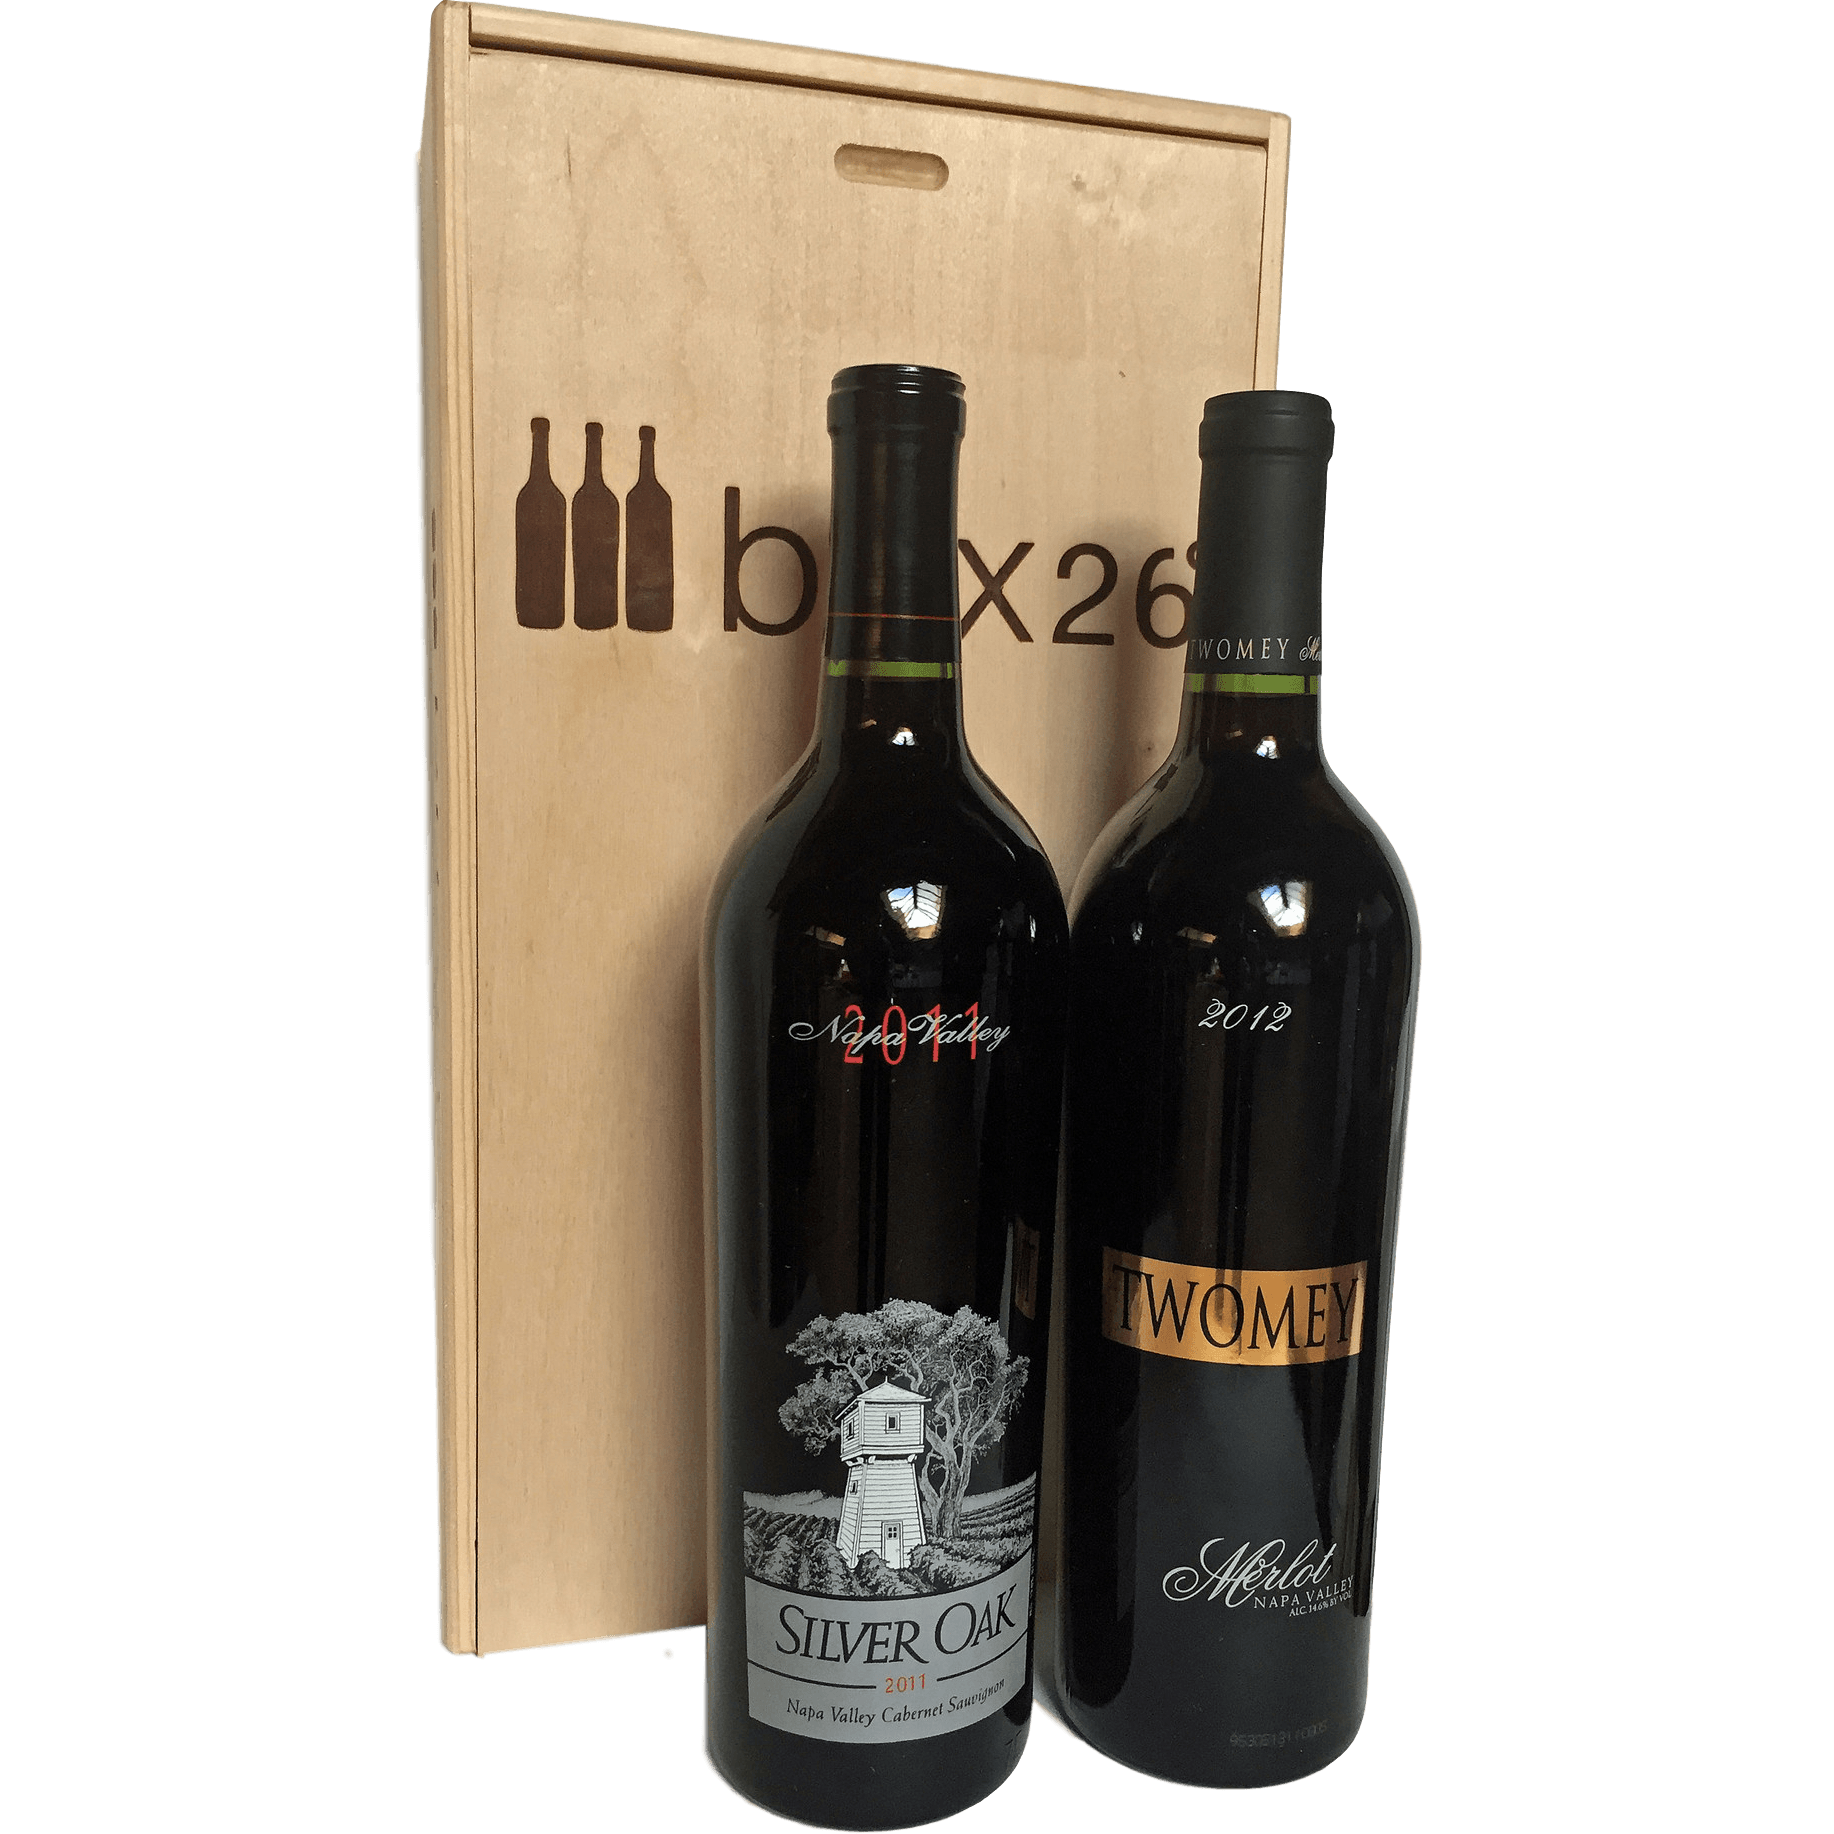 Silver Oak Napa 2-Bottle Gift Pack - Brix26